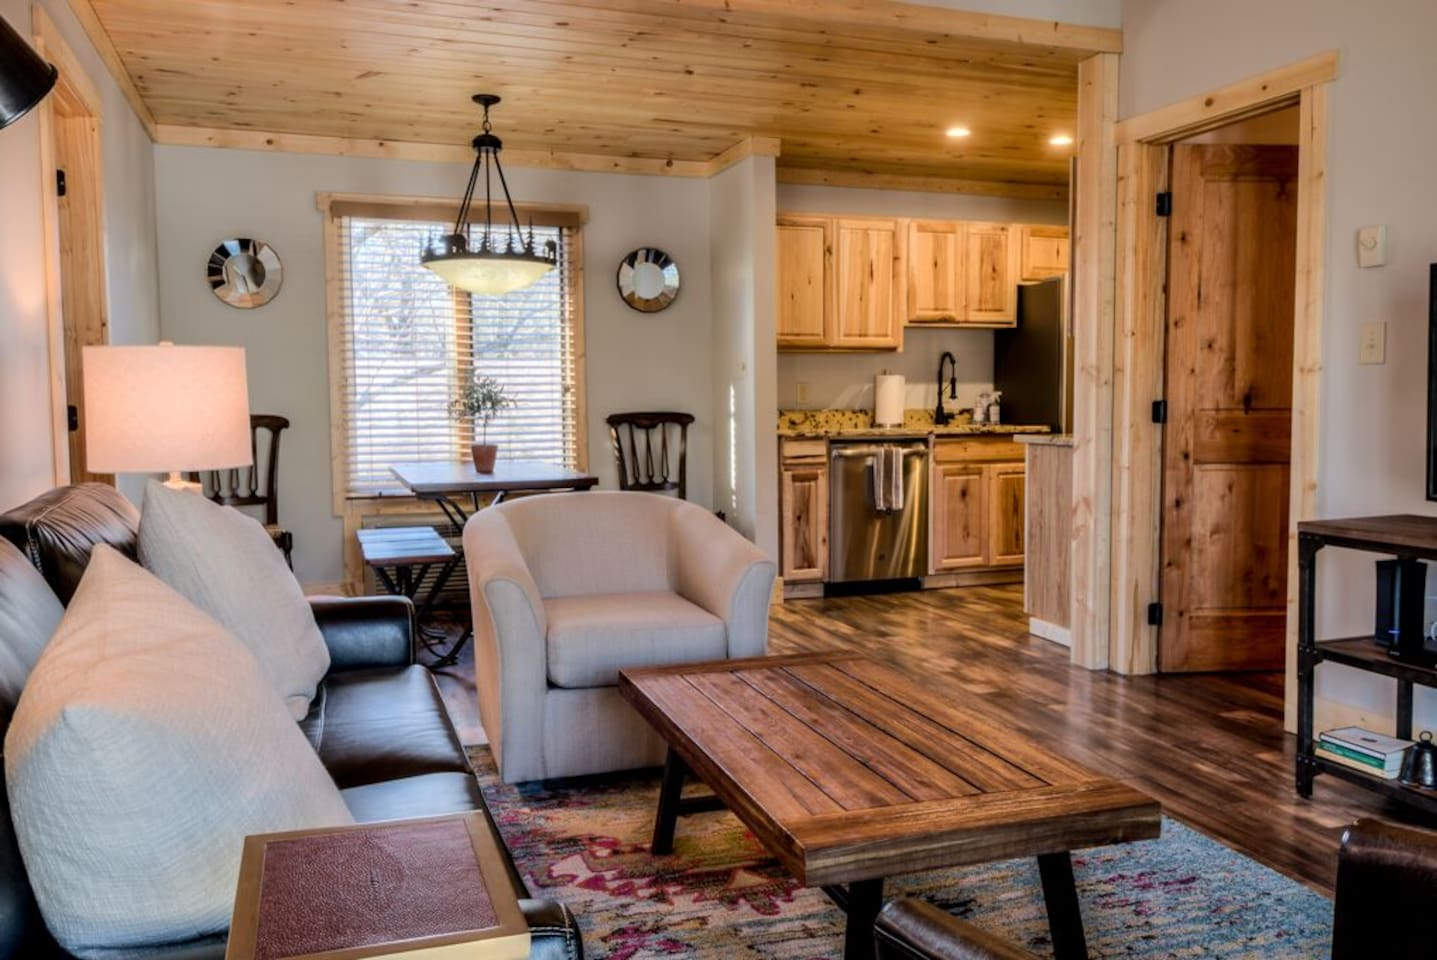 FULLY RENOVATED CONDO!  Rustic yet modern decor, all NEW furniture, rugs, paint and fixtures.  Fully stocked with luxurious linens, soaps and shampoos. Relax: You're in Blowing Rock Bliss!